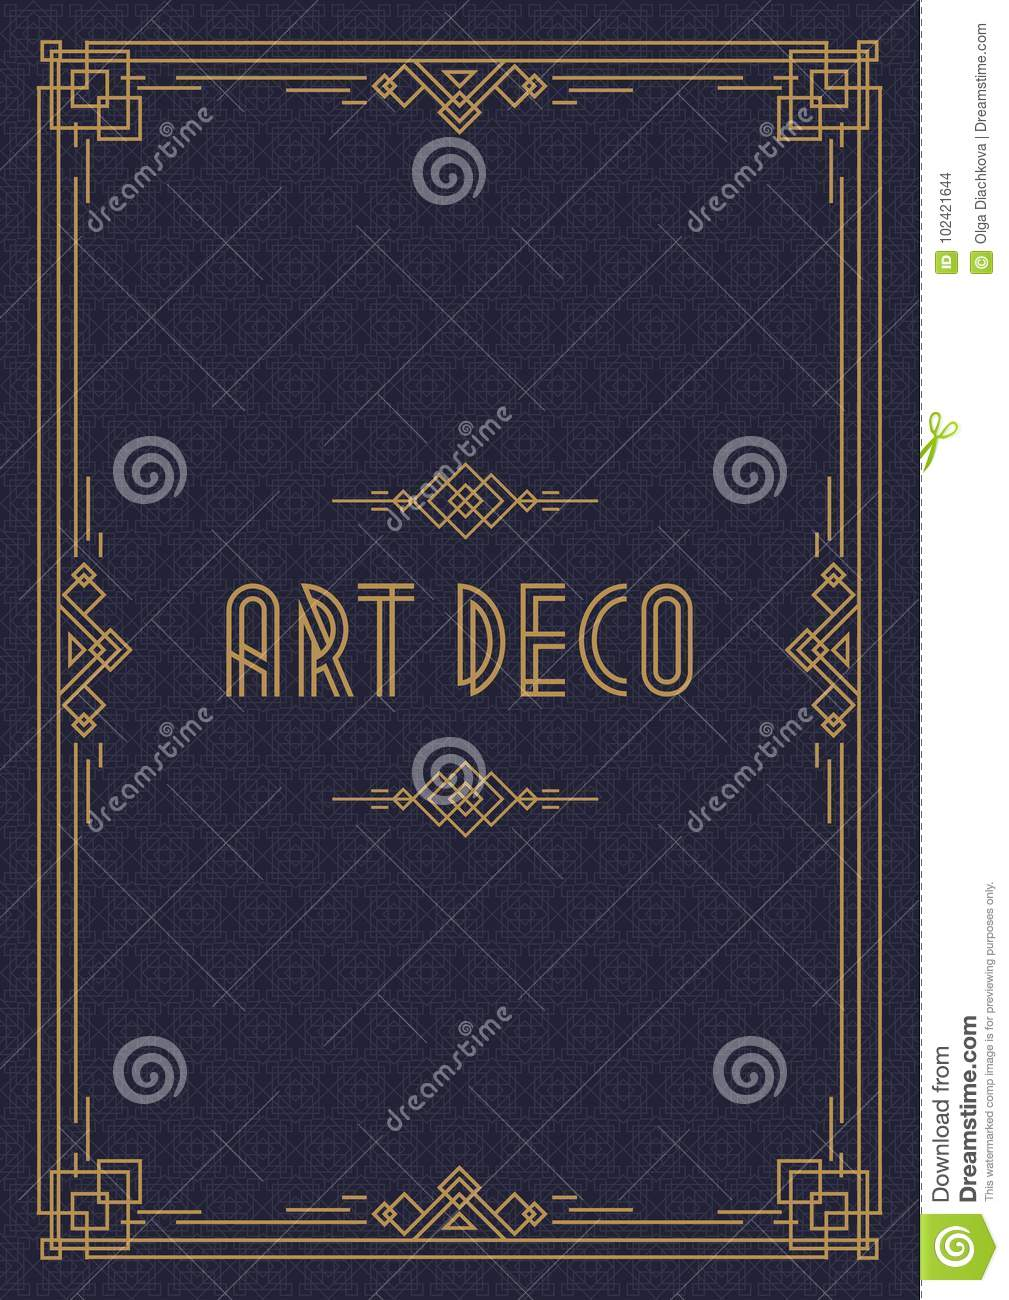 wedding invitation card template art deco style with frame gold